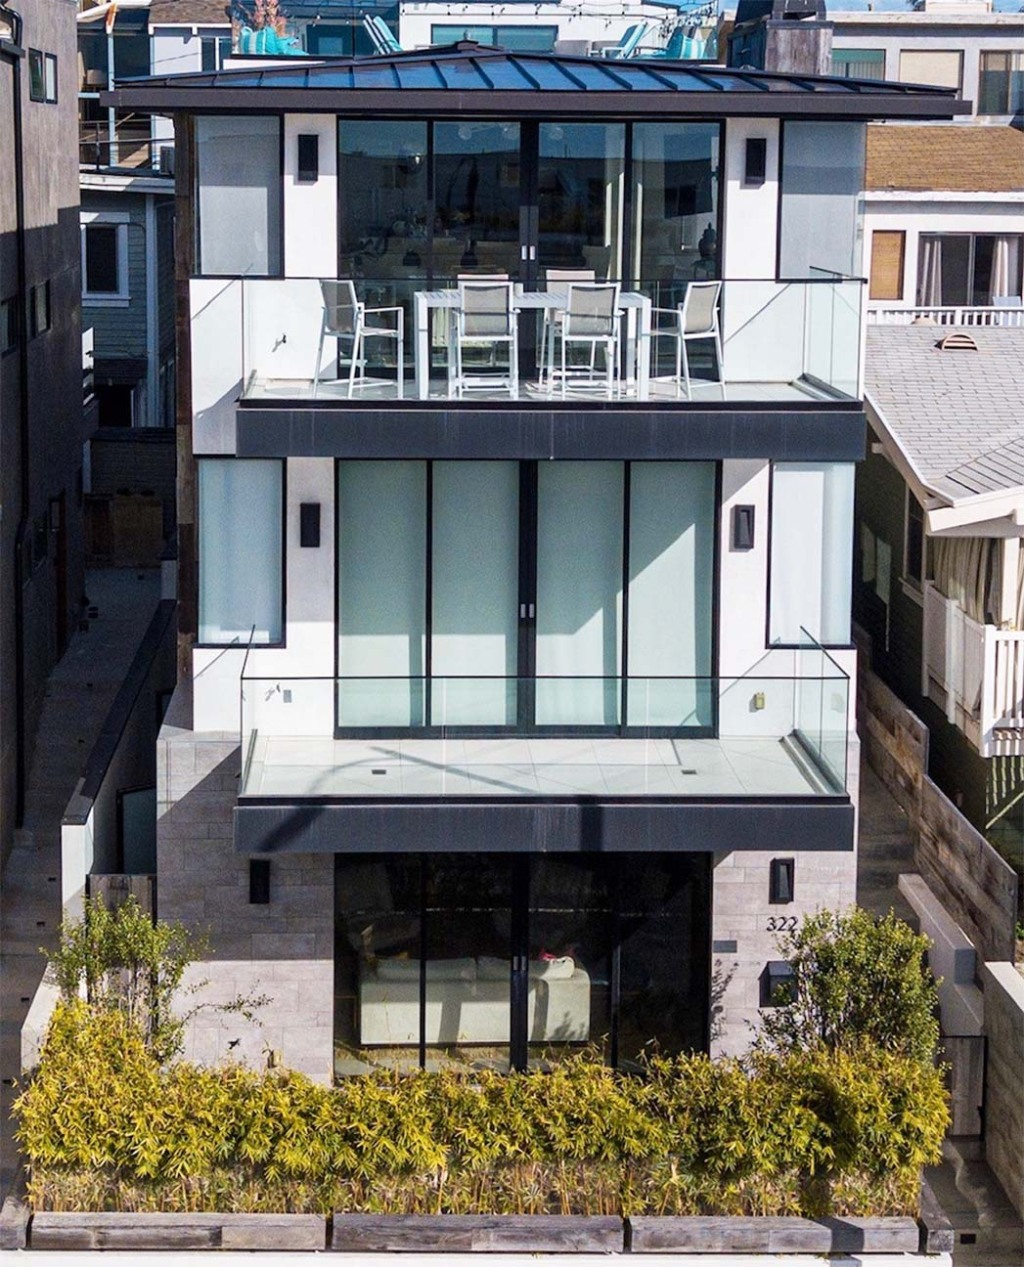 322 Manhattan Ave. in Hermosa Beach, listed with The Agency.